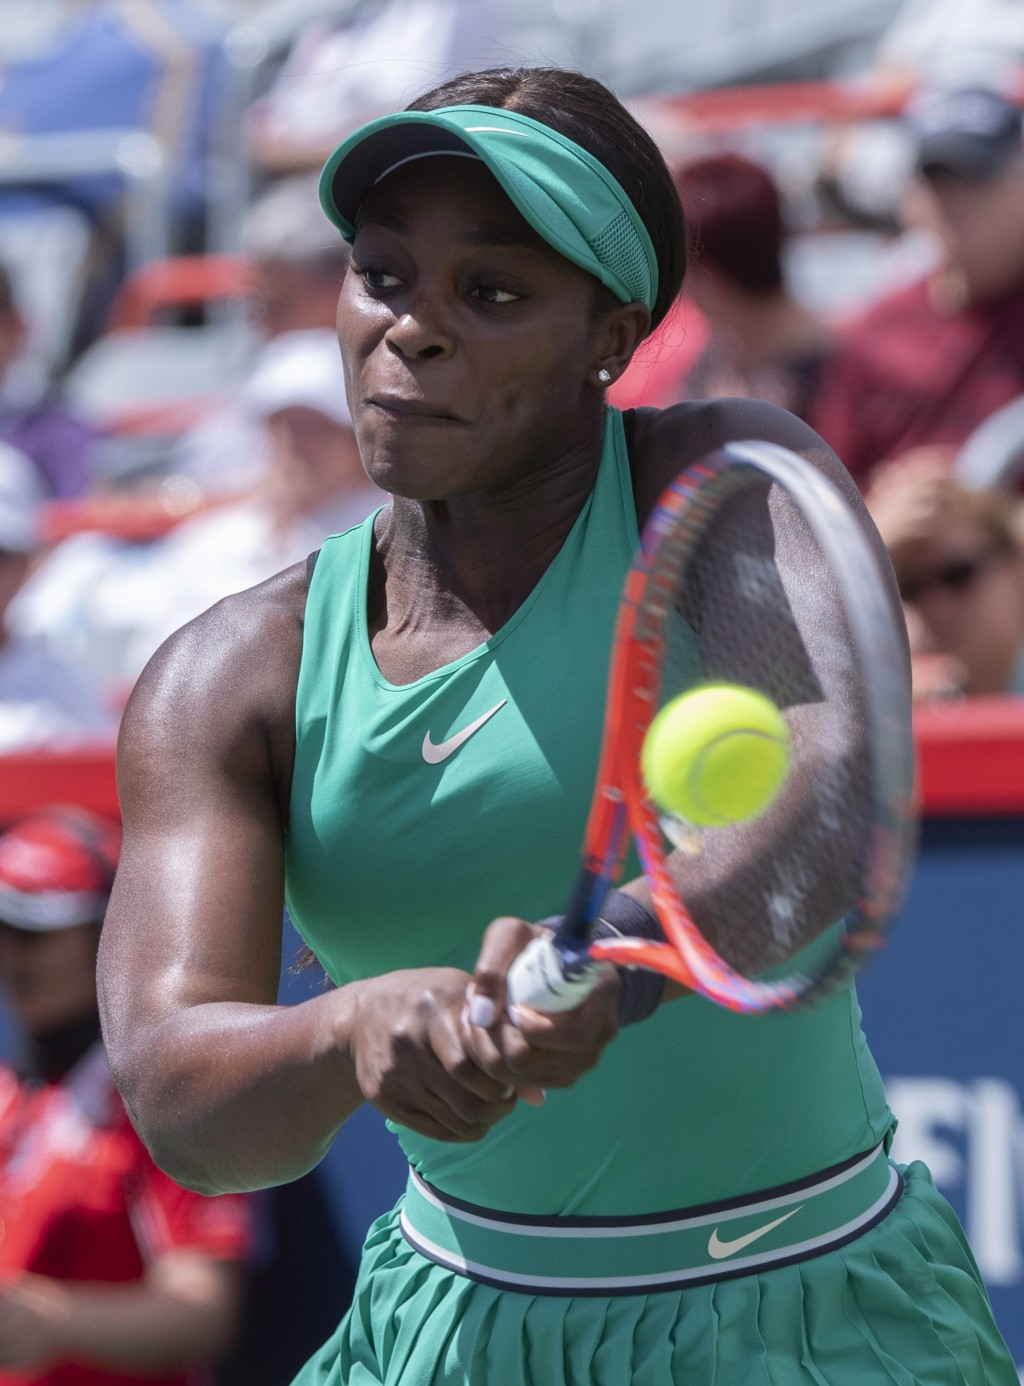 Sloane Stephens of the United States returns to Anastasija Sevastova of Latvia during quarterfinals play at the Rogers Cup tennis tournament Friday, A